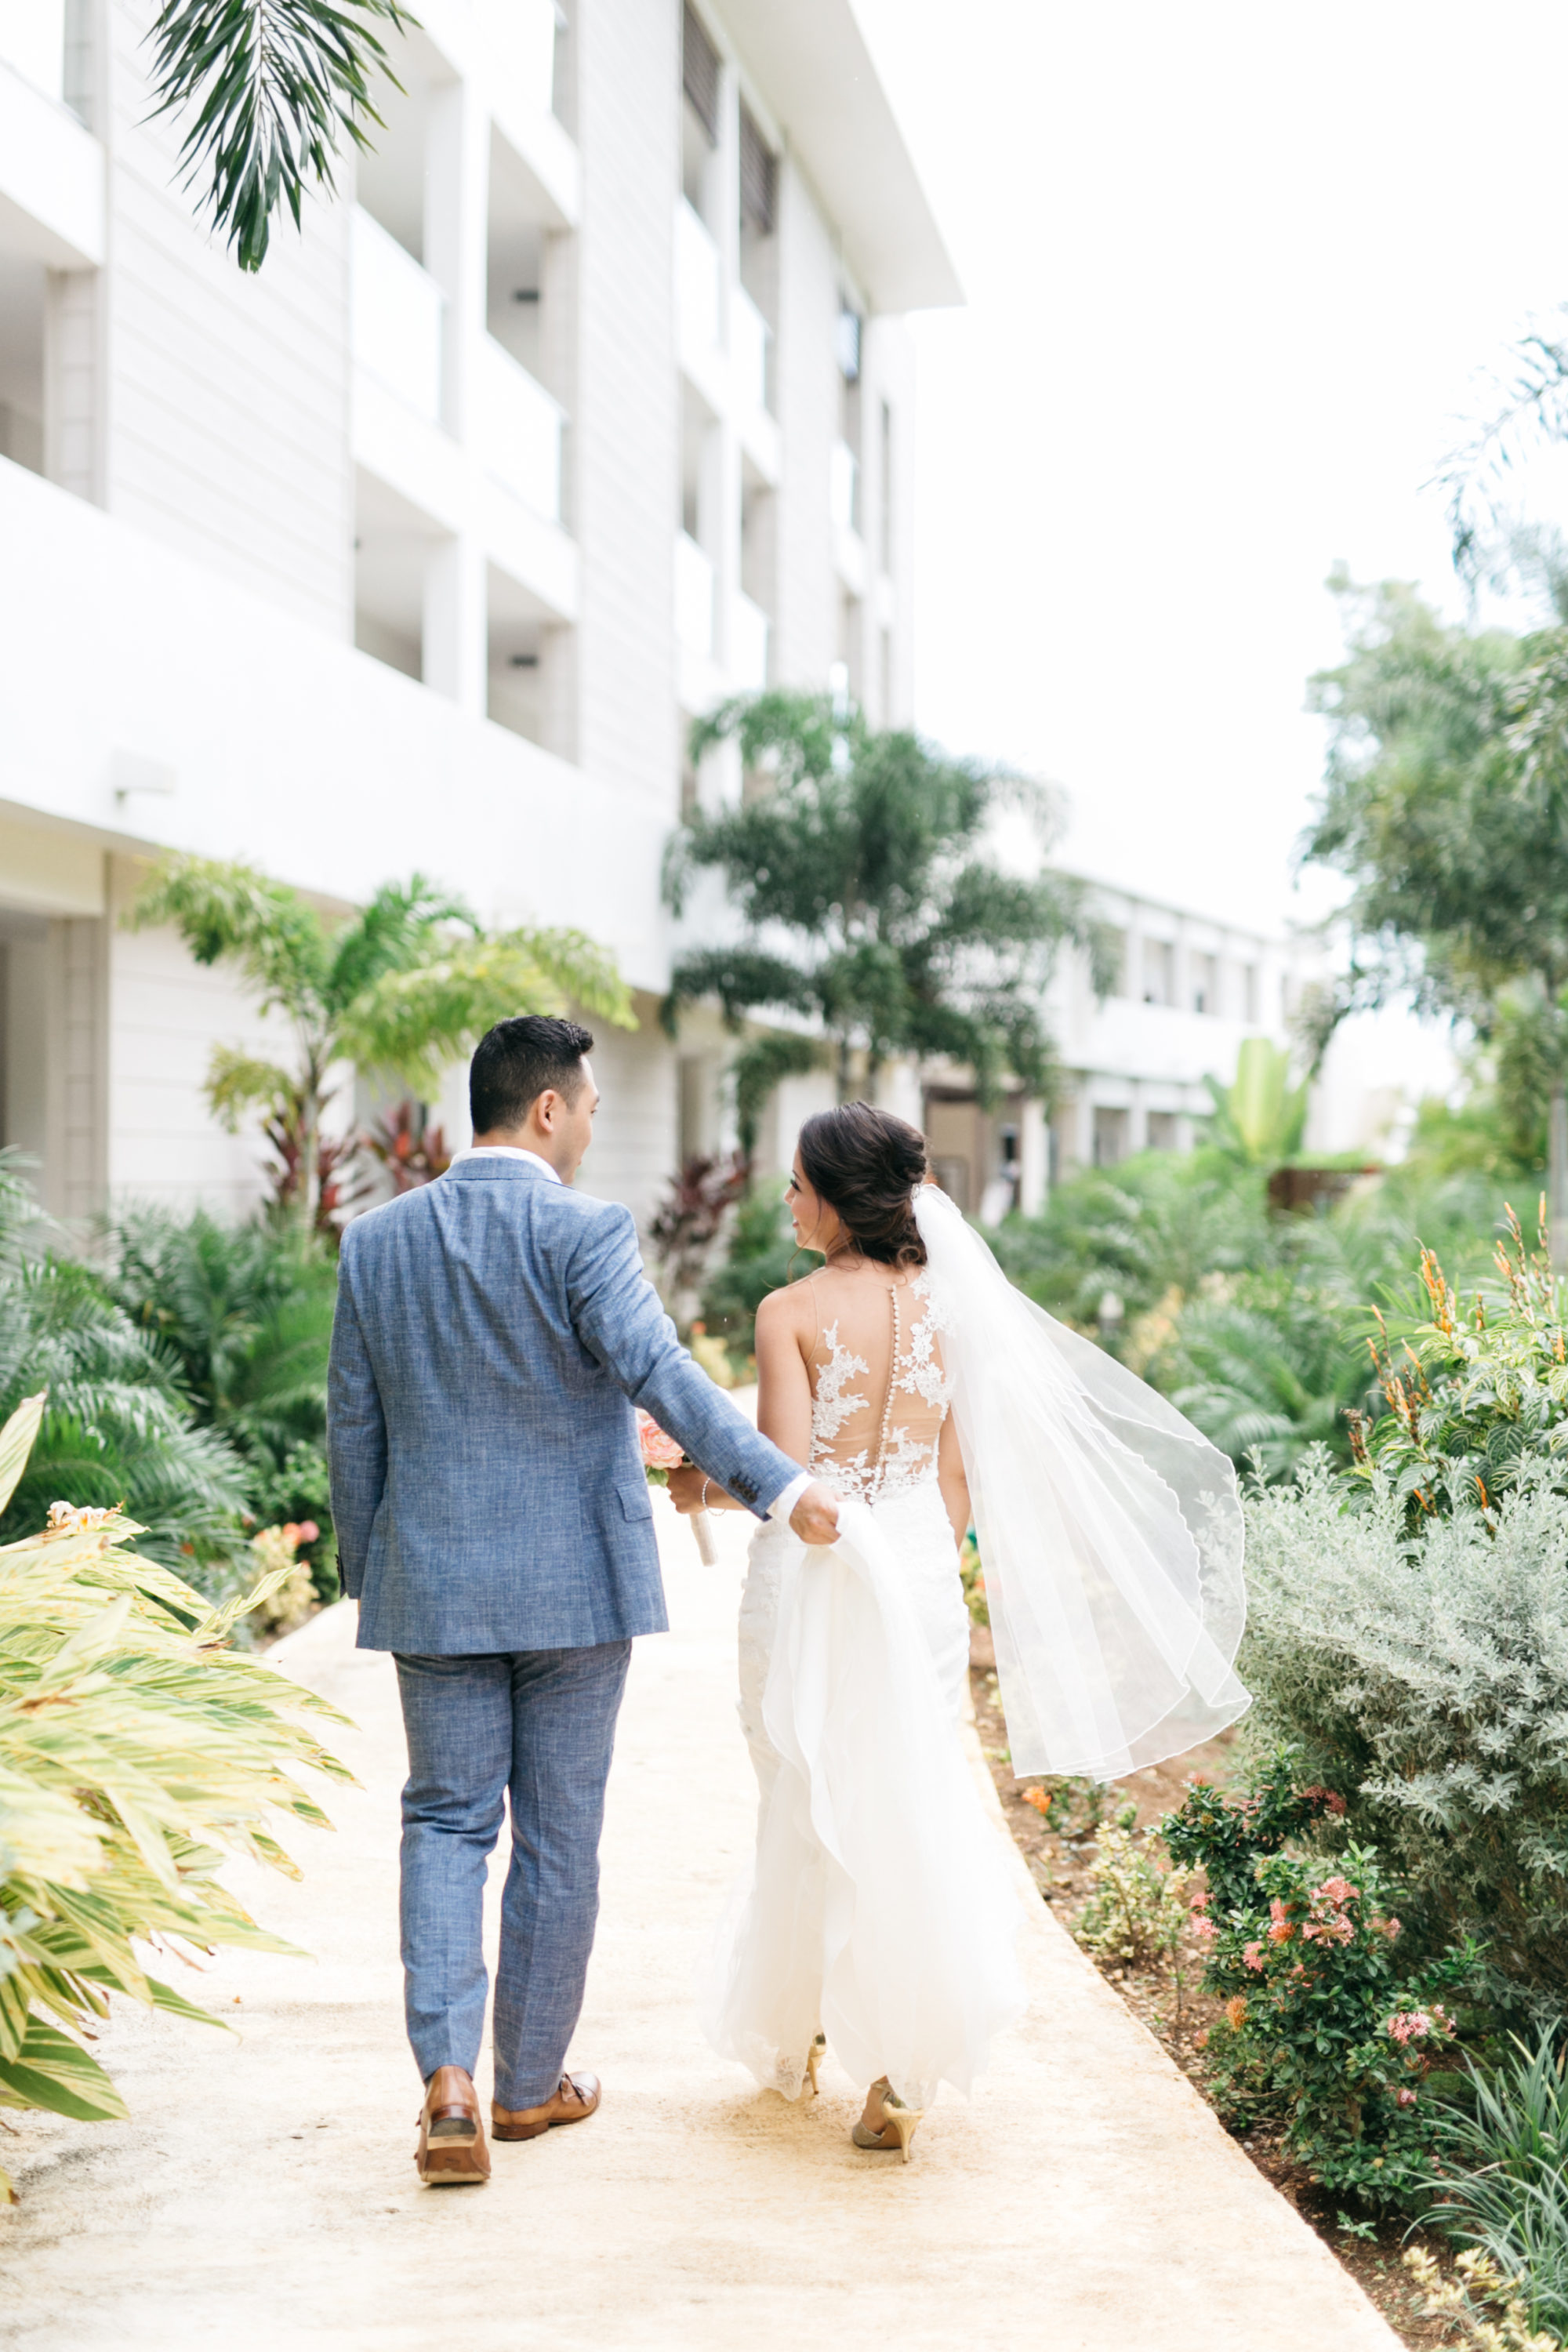 Bride and groom walking through The Royalton White Sands Resort